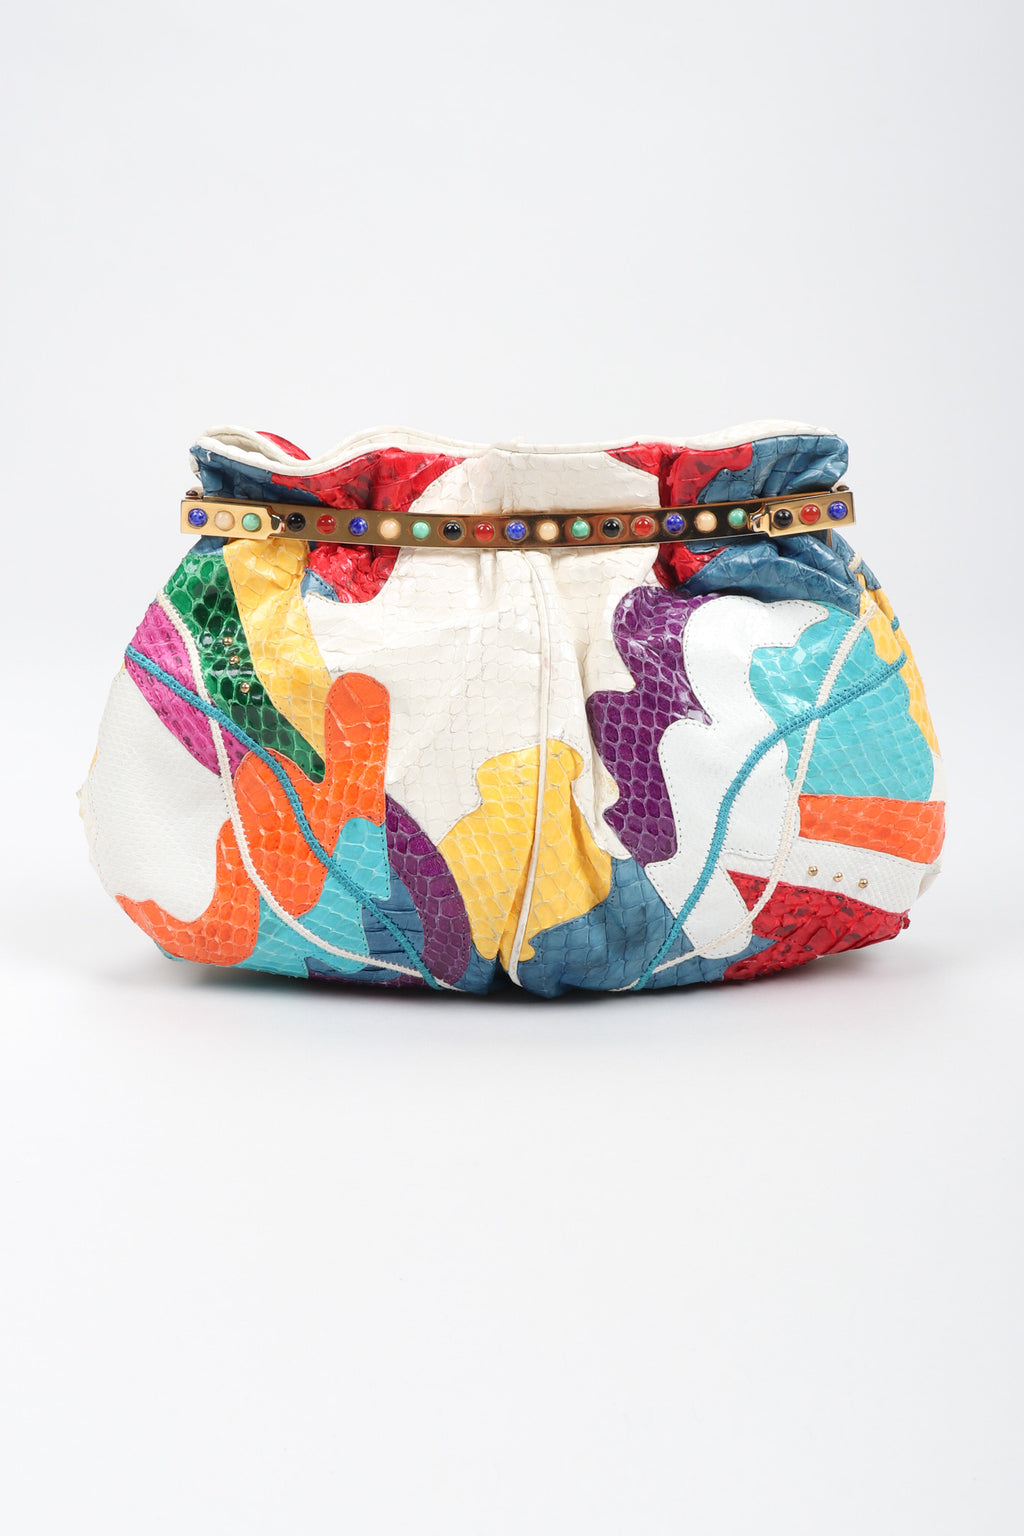 Recess Los Angeles Vintage Carlo Fiori Rainbow Collage Patchwork Snake Pouch Bag